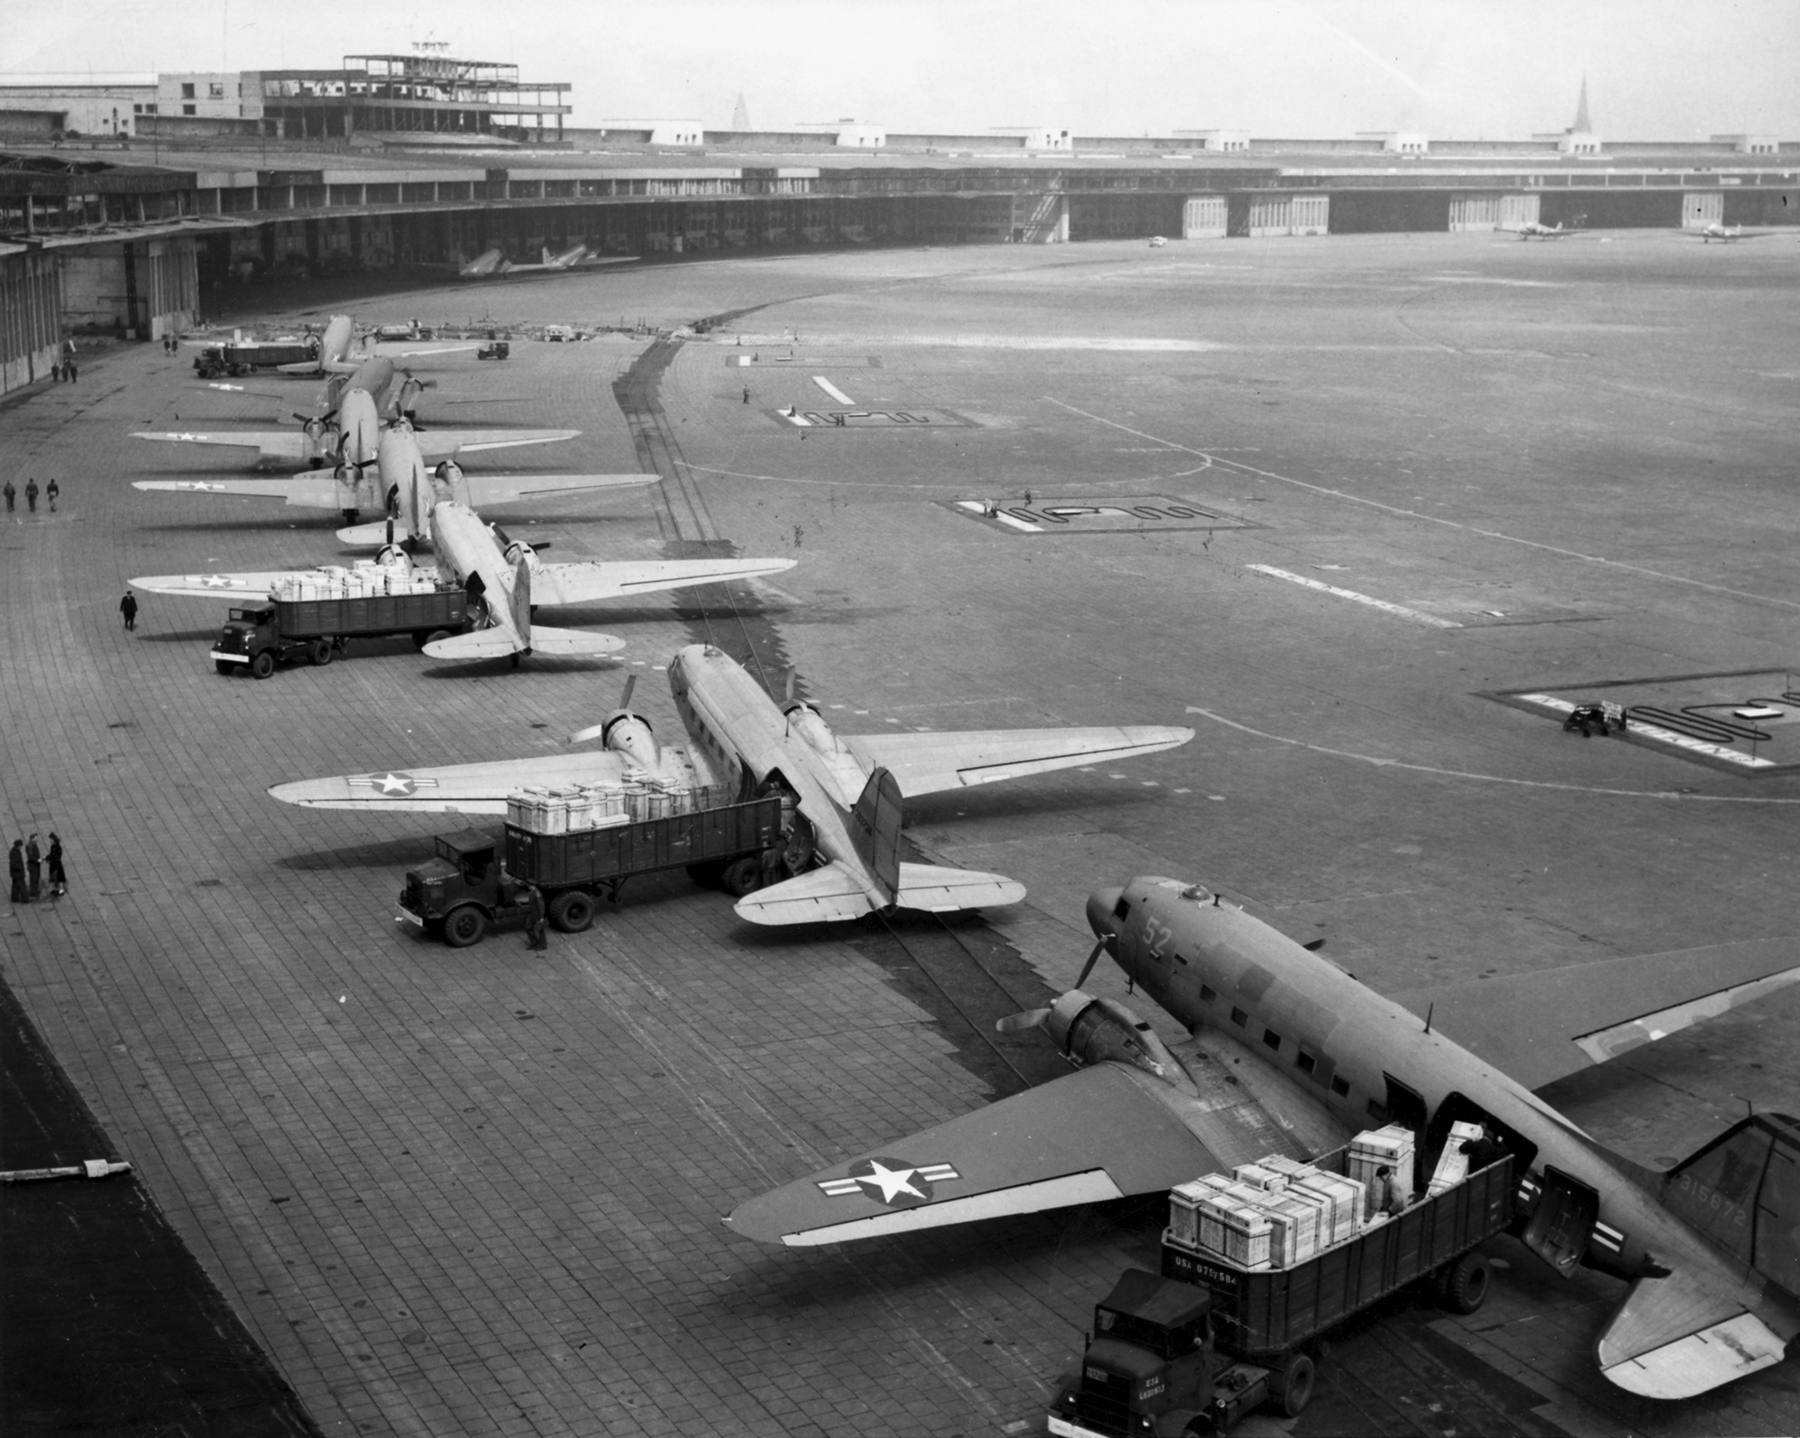 Berlin Airlift - http://www.history.com/topics/cold-war/berlin-airlift